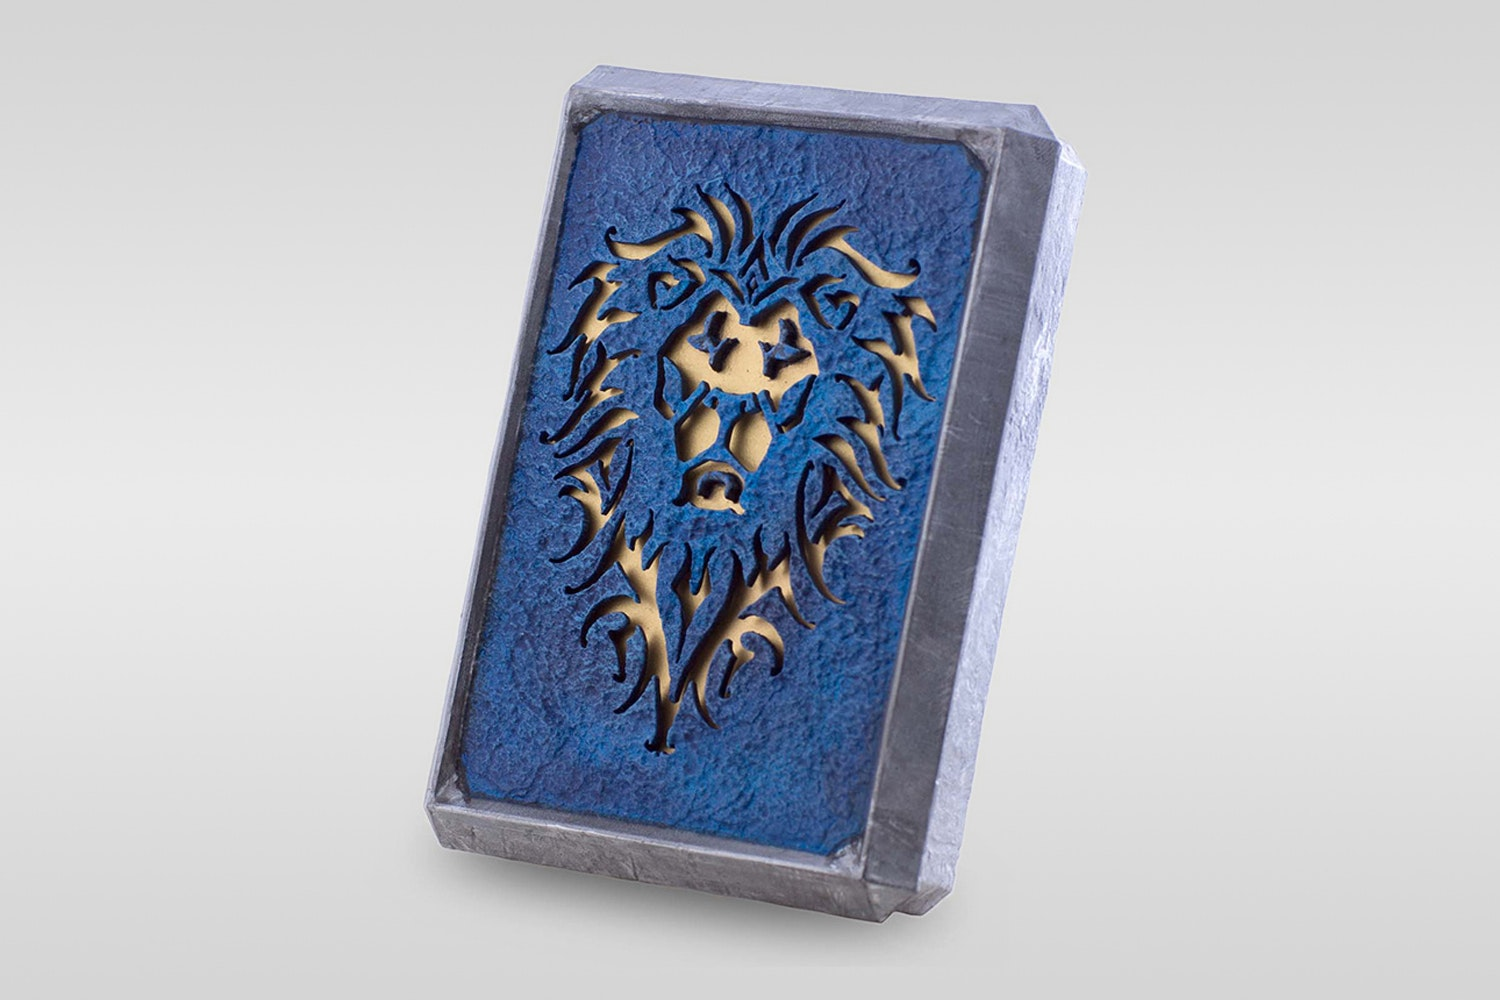 World of Warcraft Power Banks